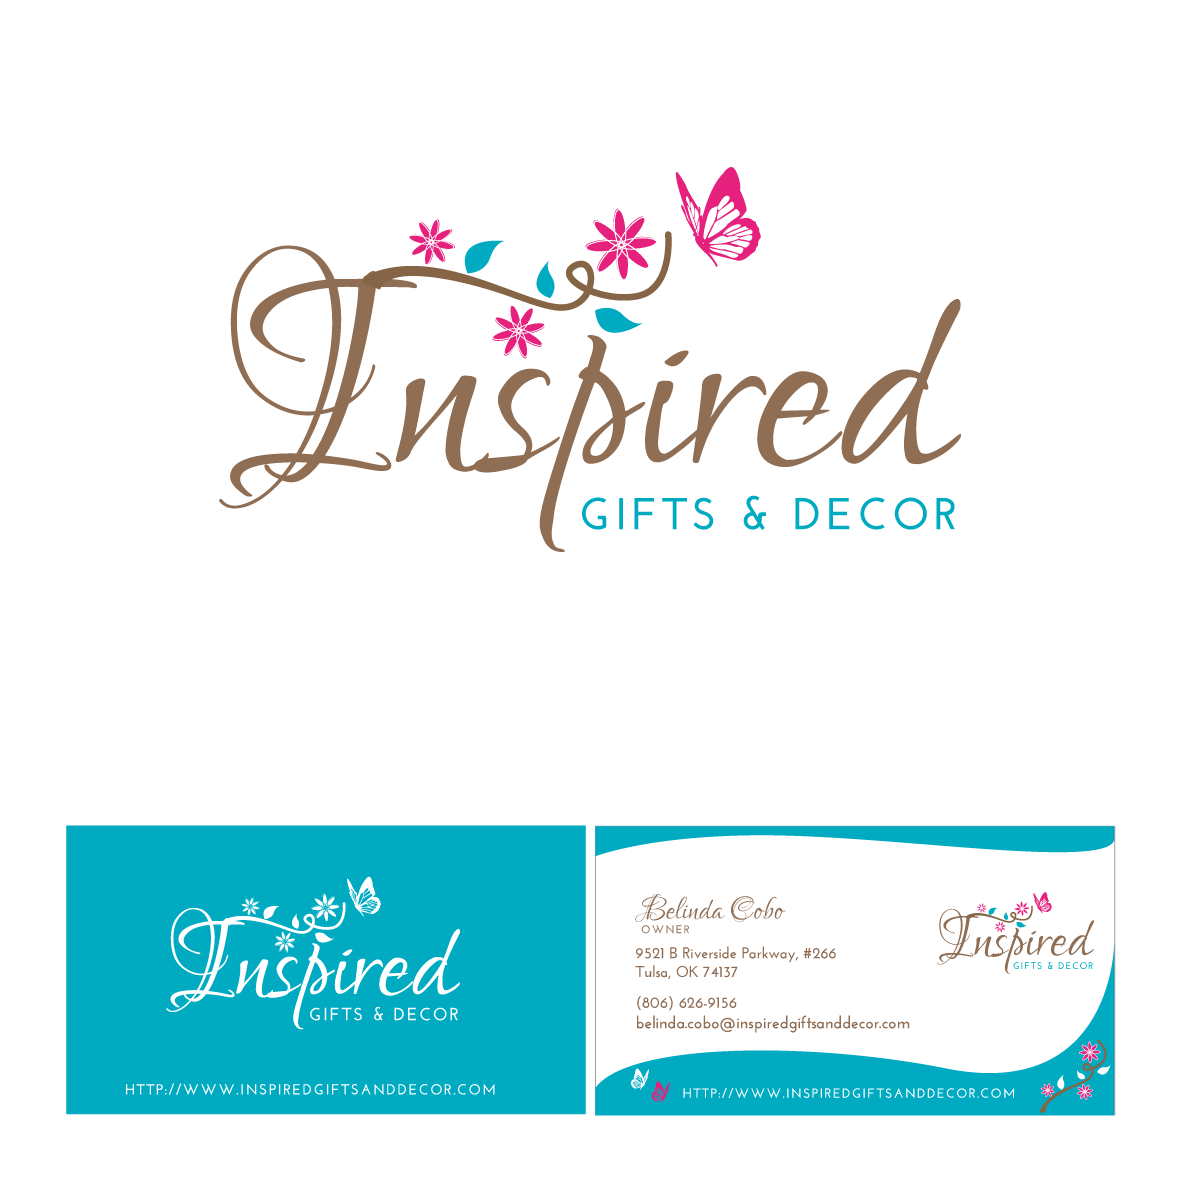 New logo and business card wanted for Inspired Gifts & Decor